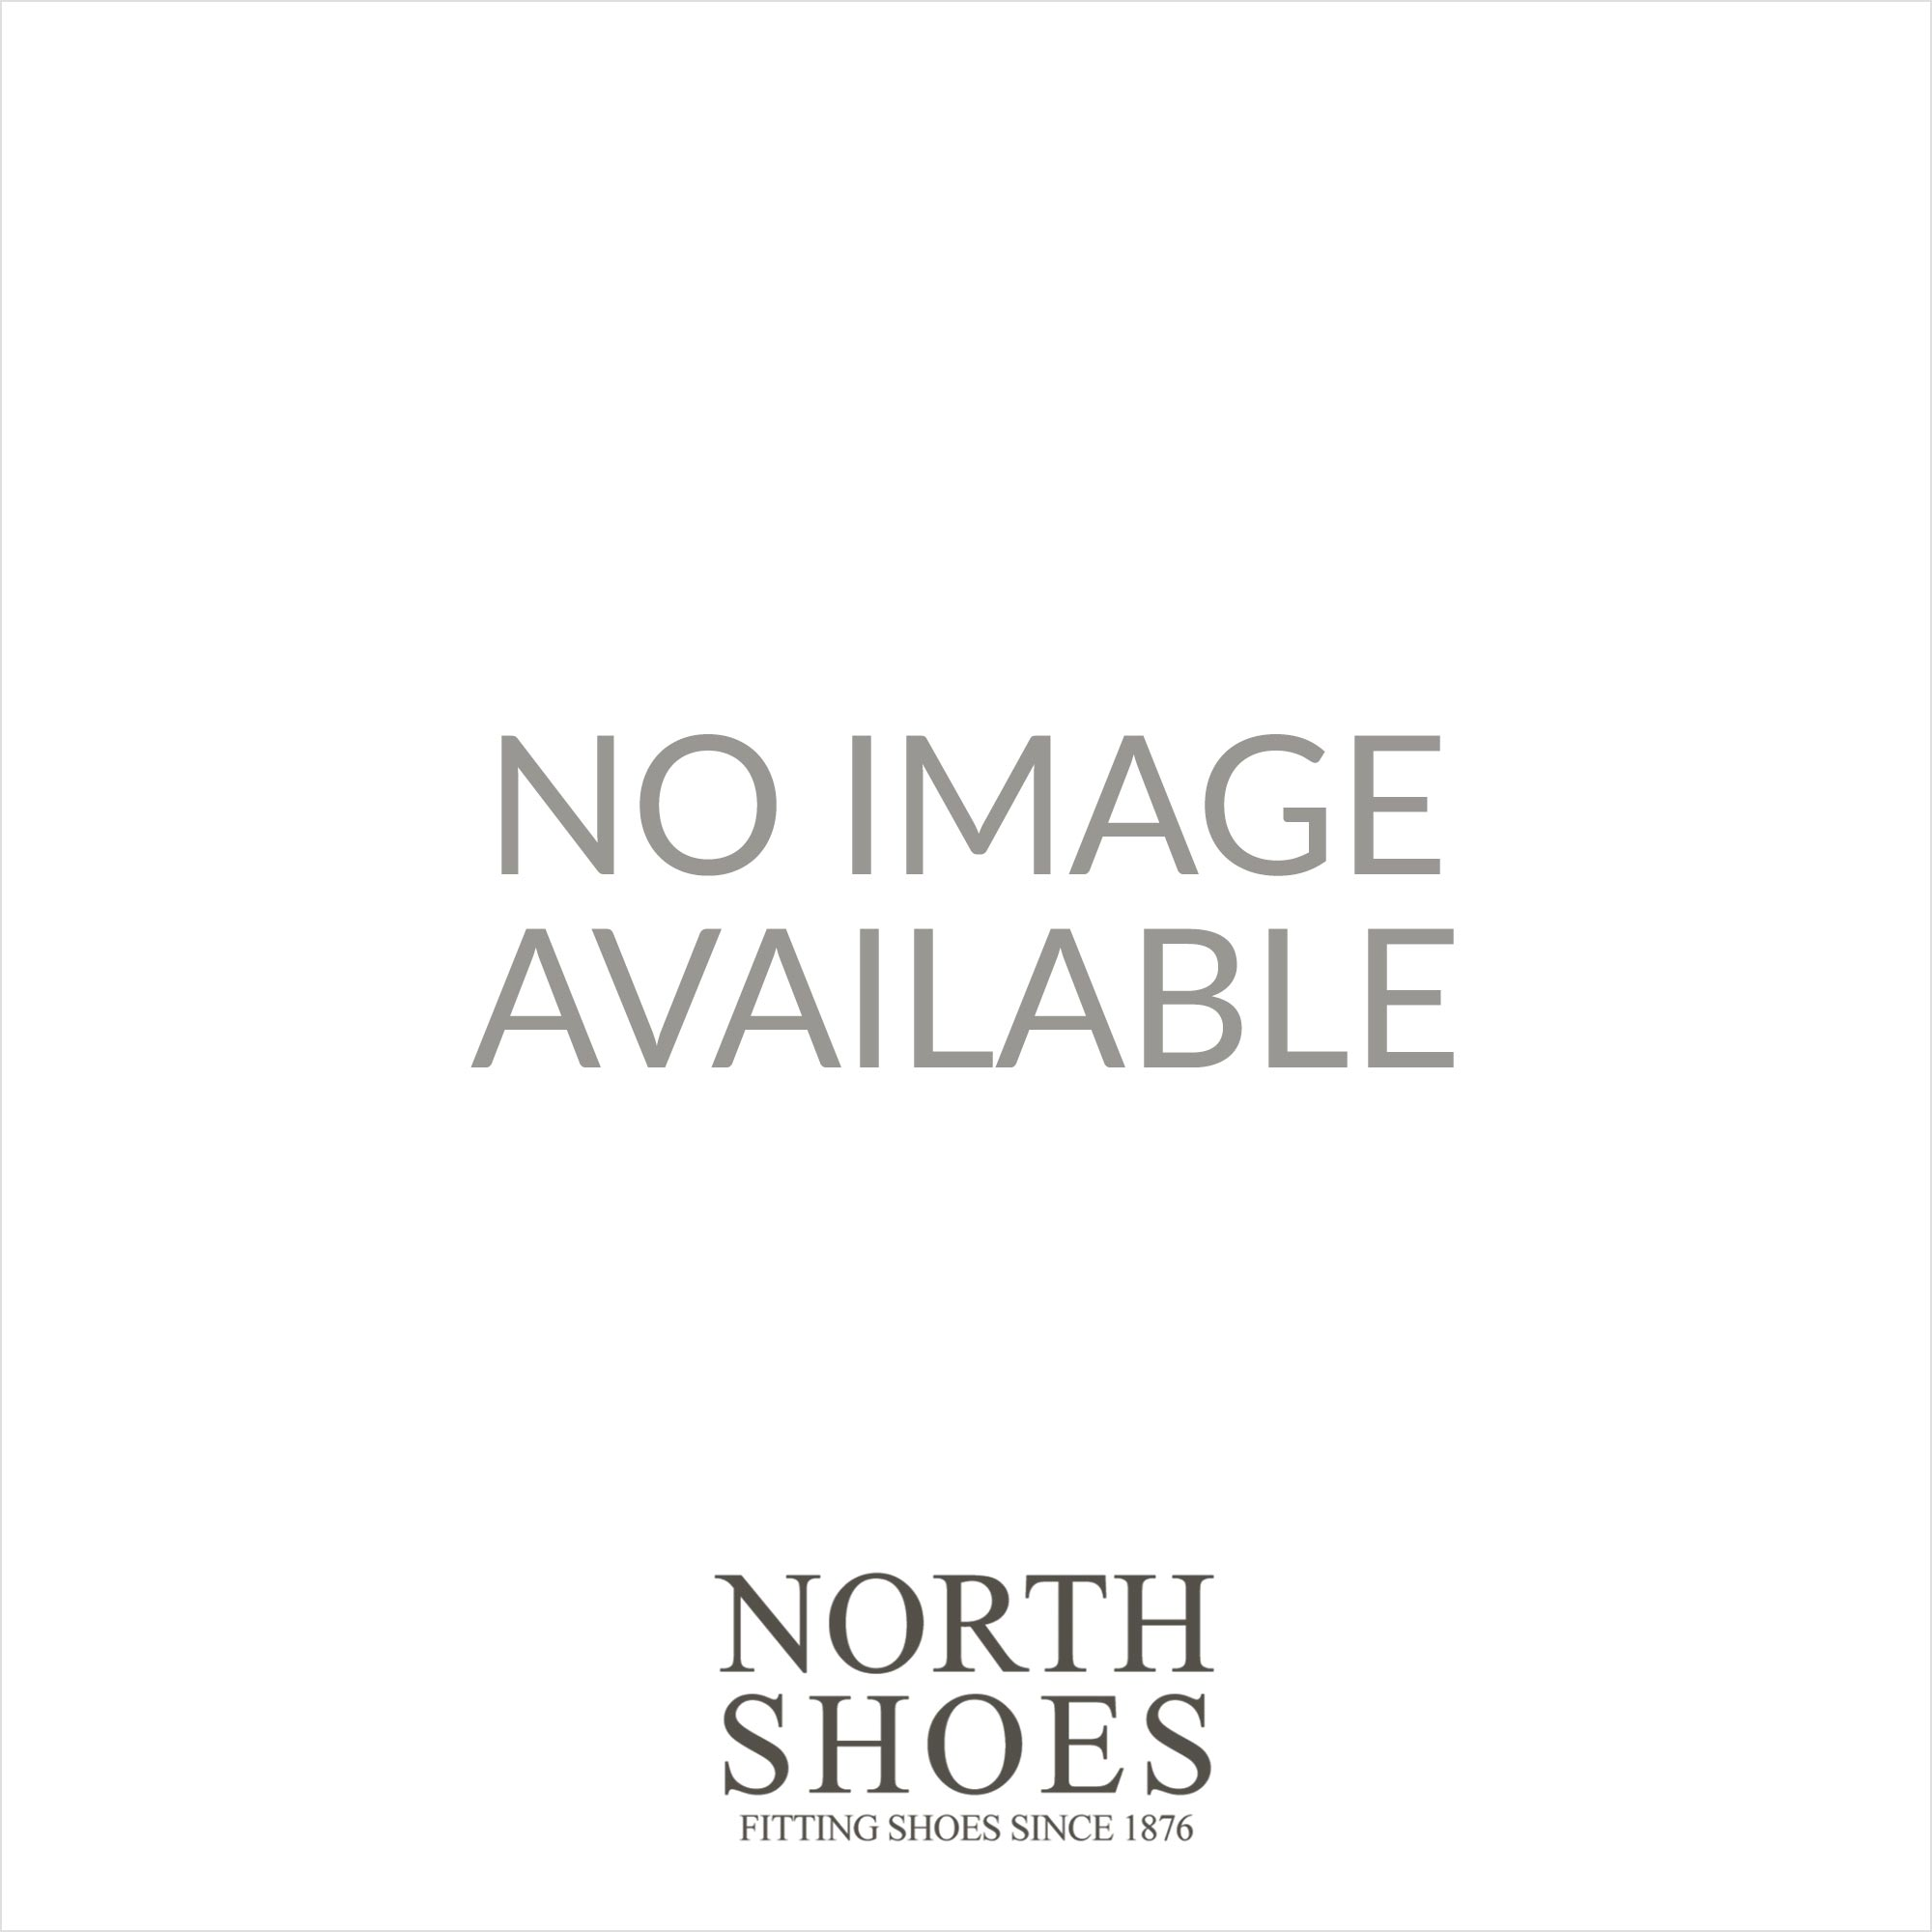 95323-00 Black Womens Heeled Ankle Boot